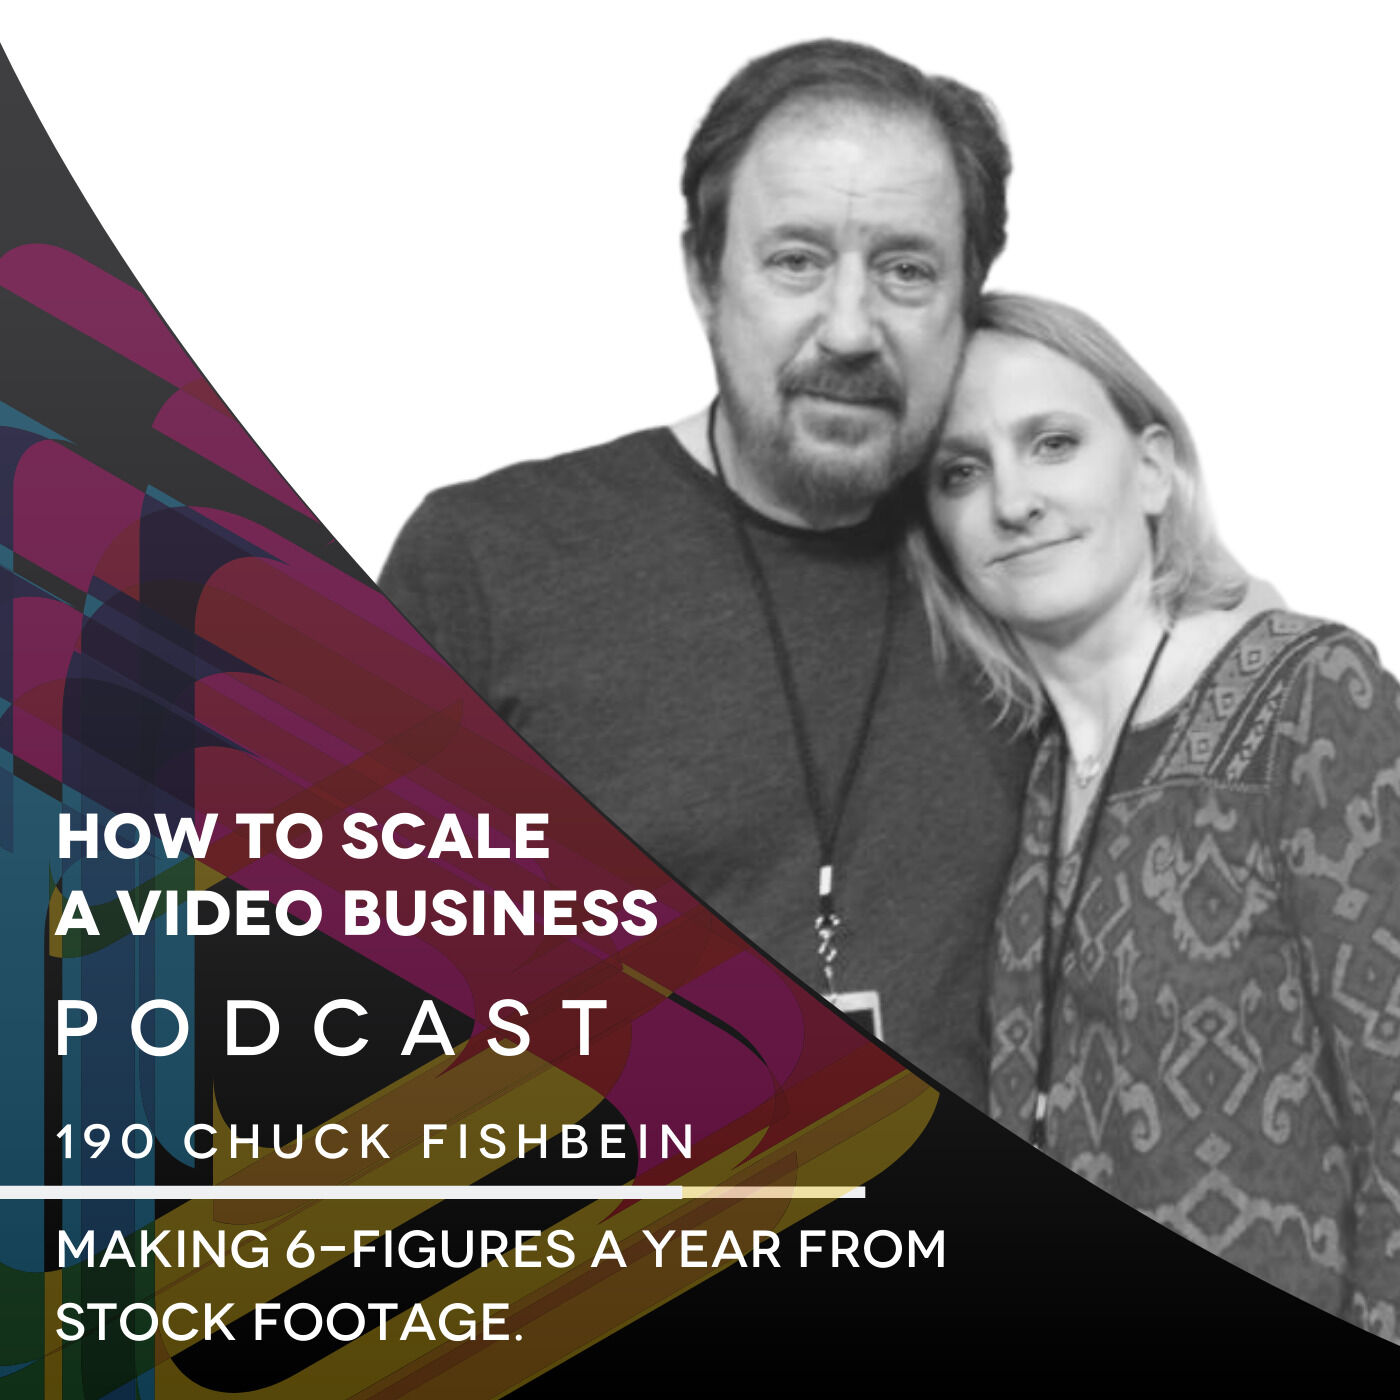 Making 6-figures a year from Stock footage. EP #190 - Chuck Fishbein